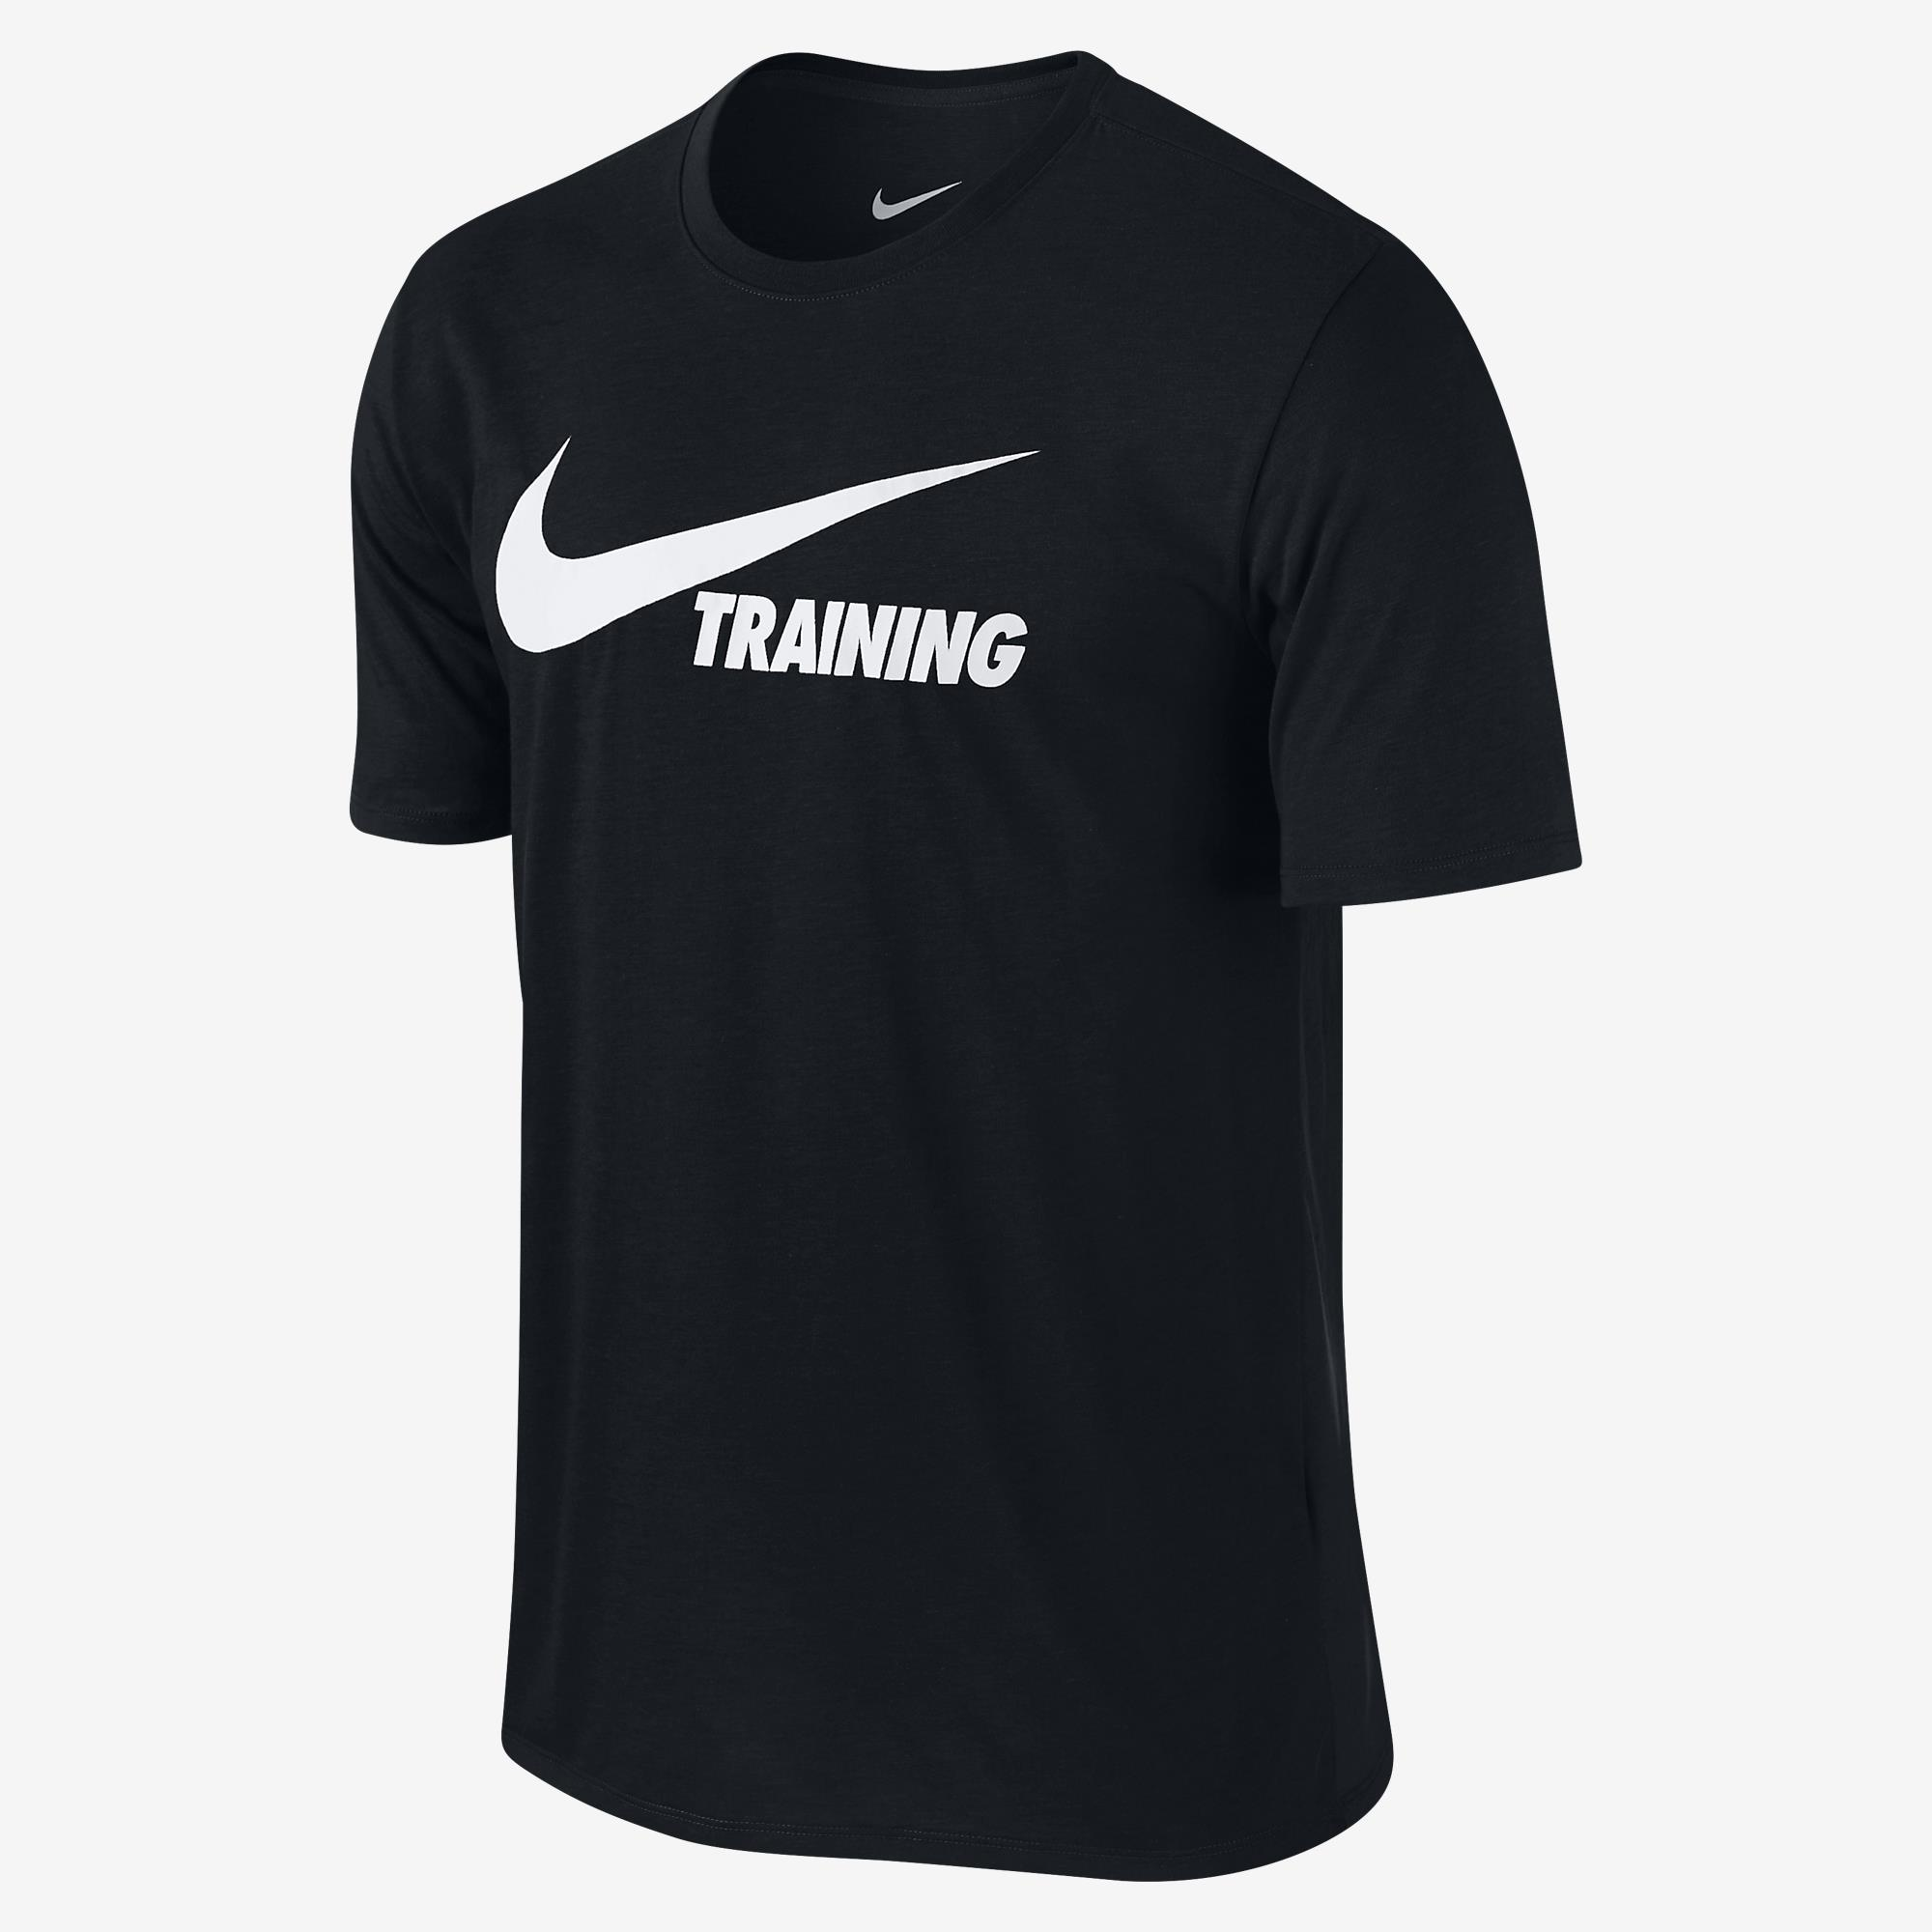 Camiseta Nike Training Swoosh Tee - F777358